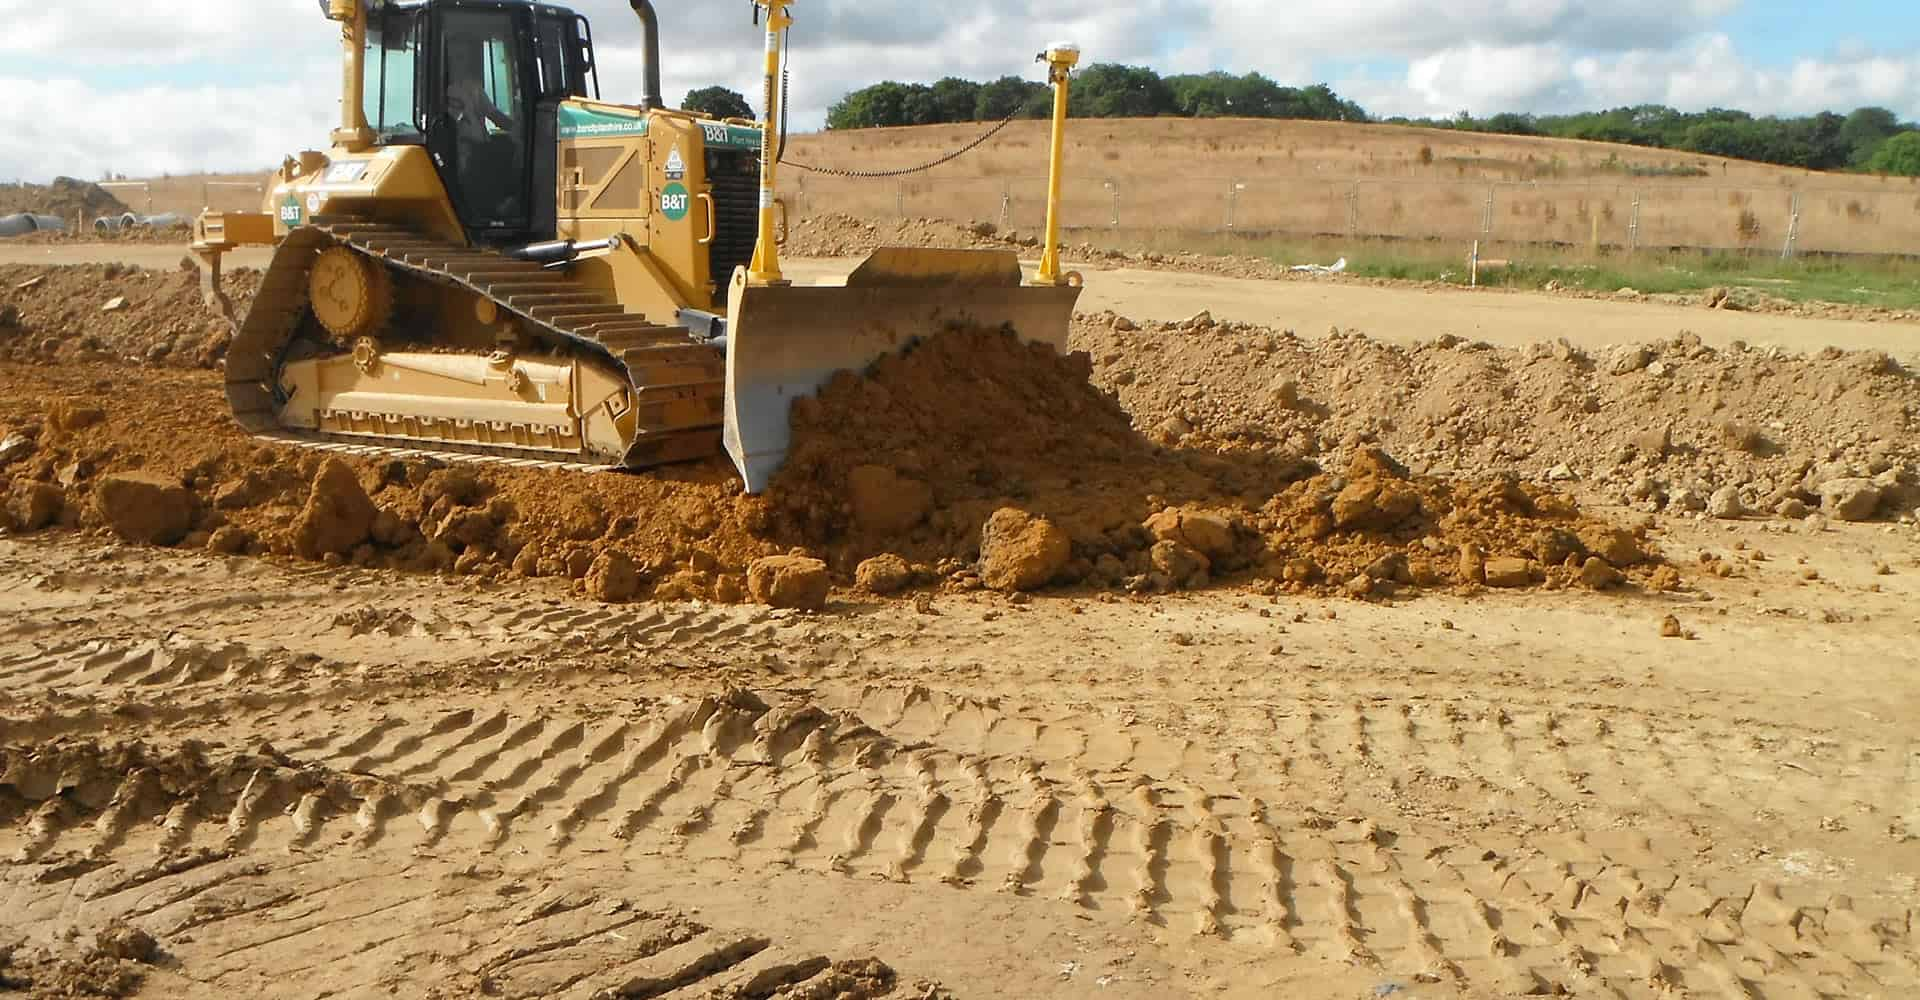 Carrying out earthworks